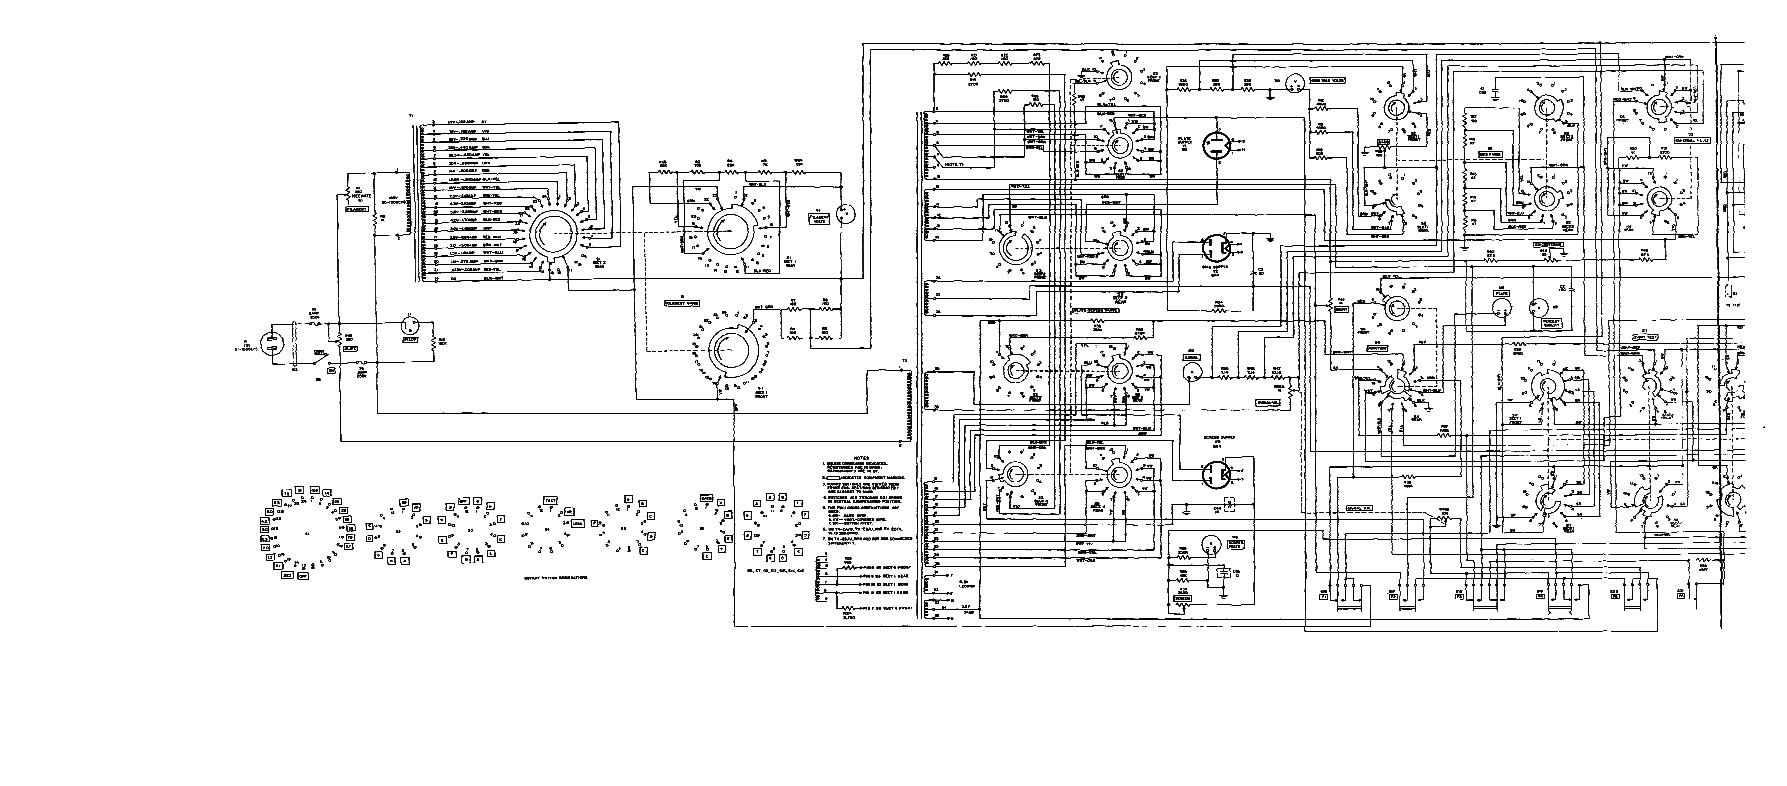 Figure 26 Test Set Electron Tube Tv 2 U Schematic Diagram And Circuit